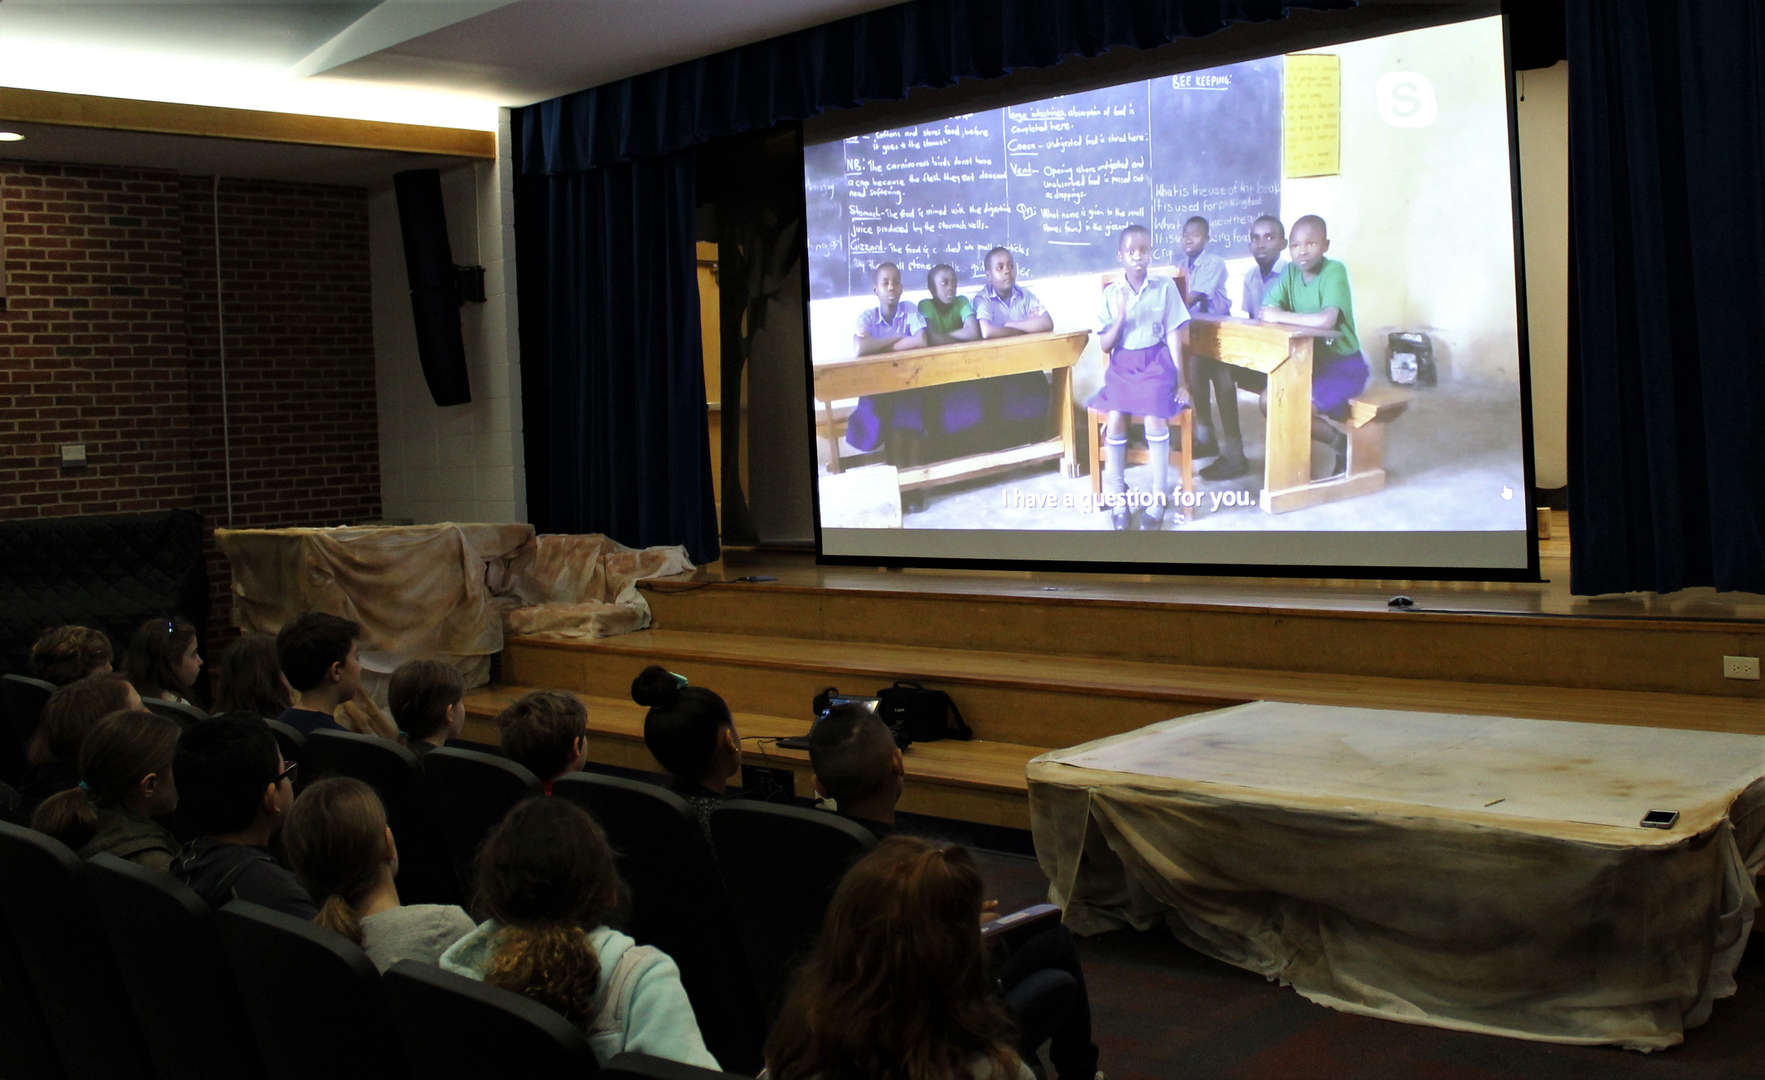 Students from all over the world got to ask questions for the Skype in the Classroom event.